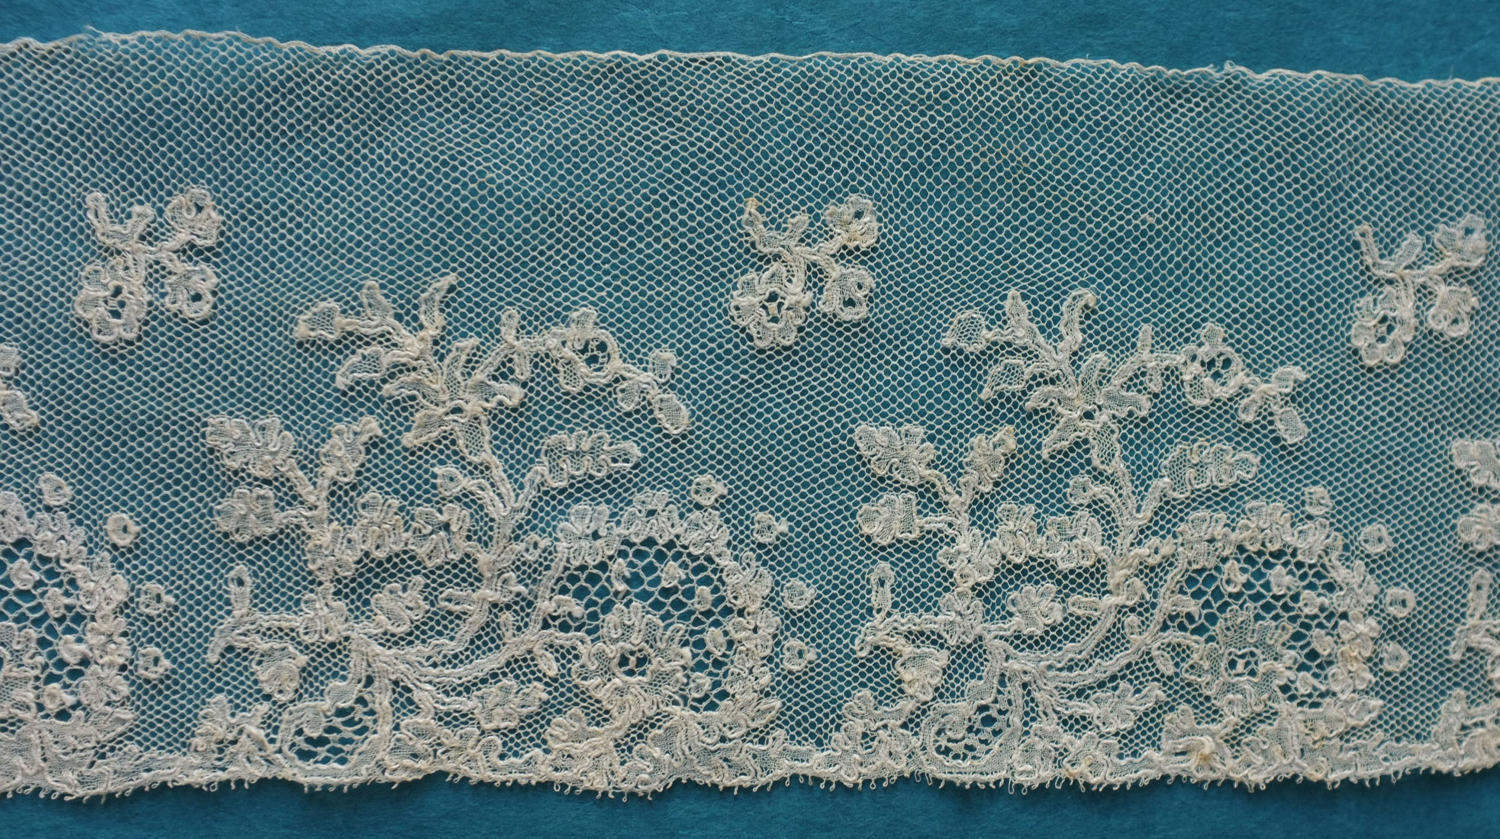 Mechlin Bobbin Lace Border circa 1840